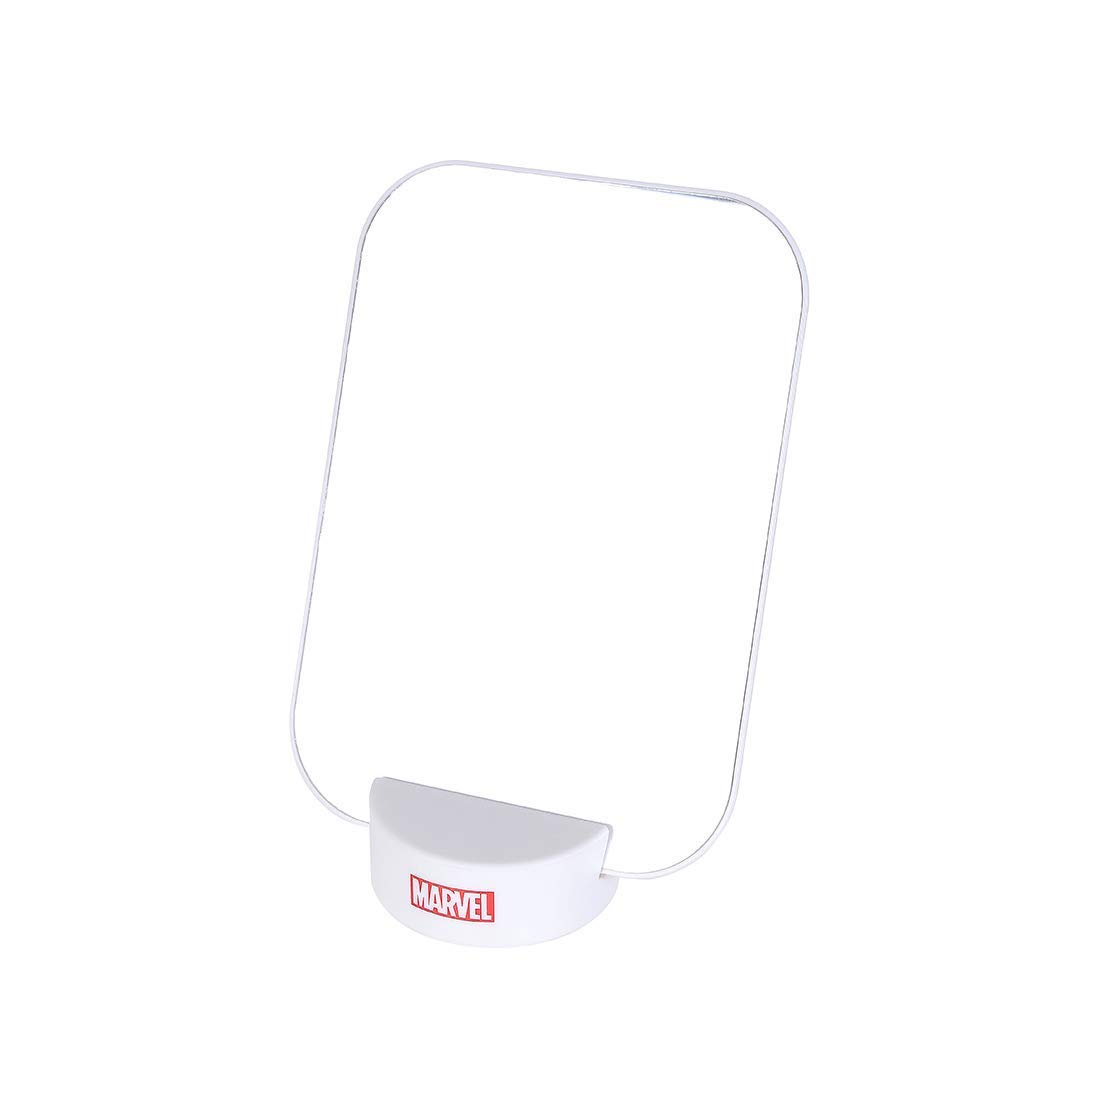 MINISO Marvel Makeup Mirror Table Standing Mirror Portable Desk Mirror with Stand Square Cosmetic Mirror for Bathroom Shower Shaving-White